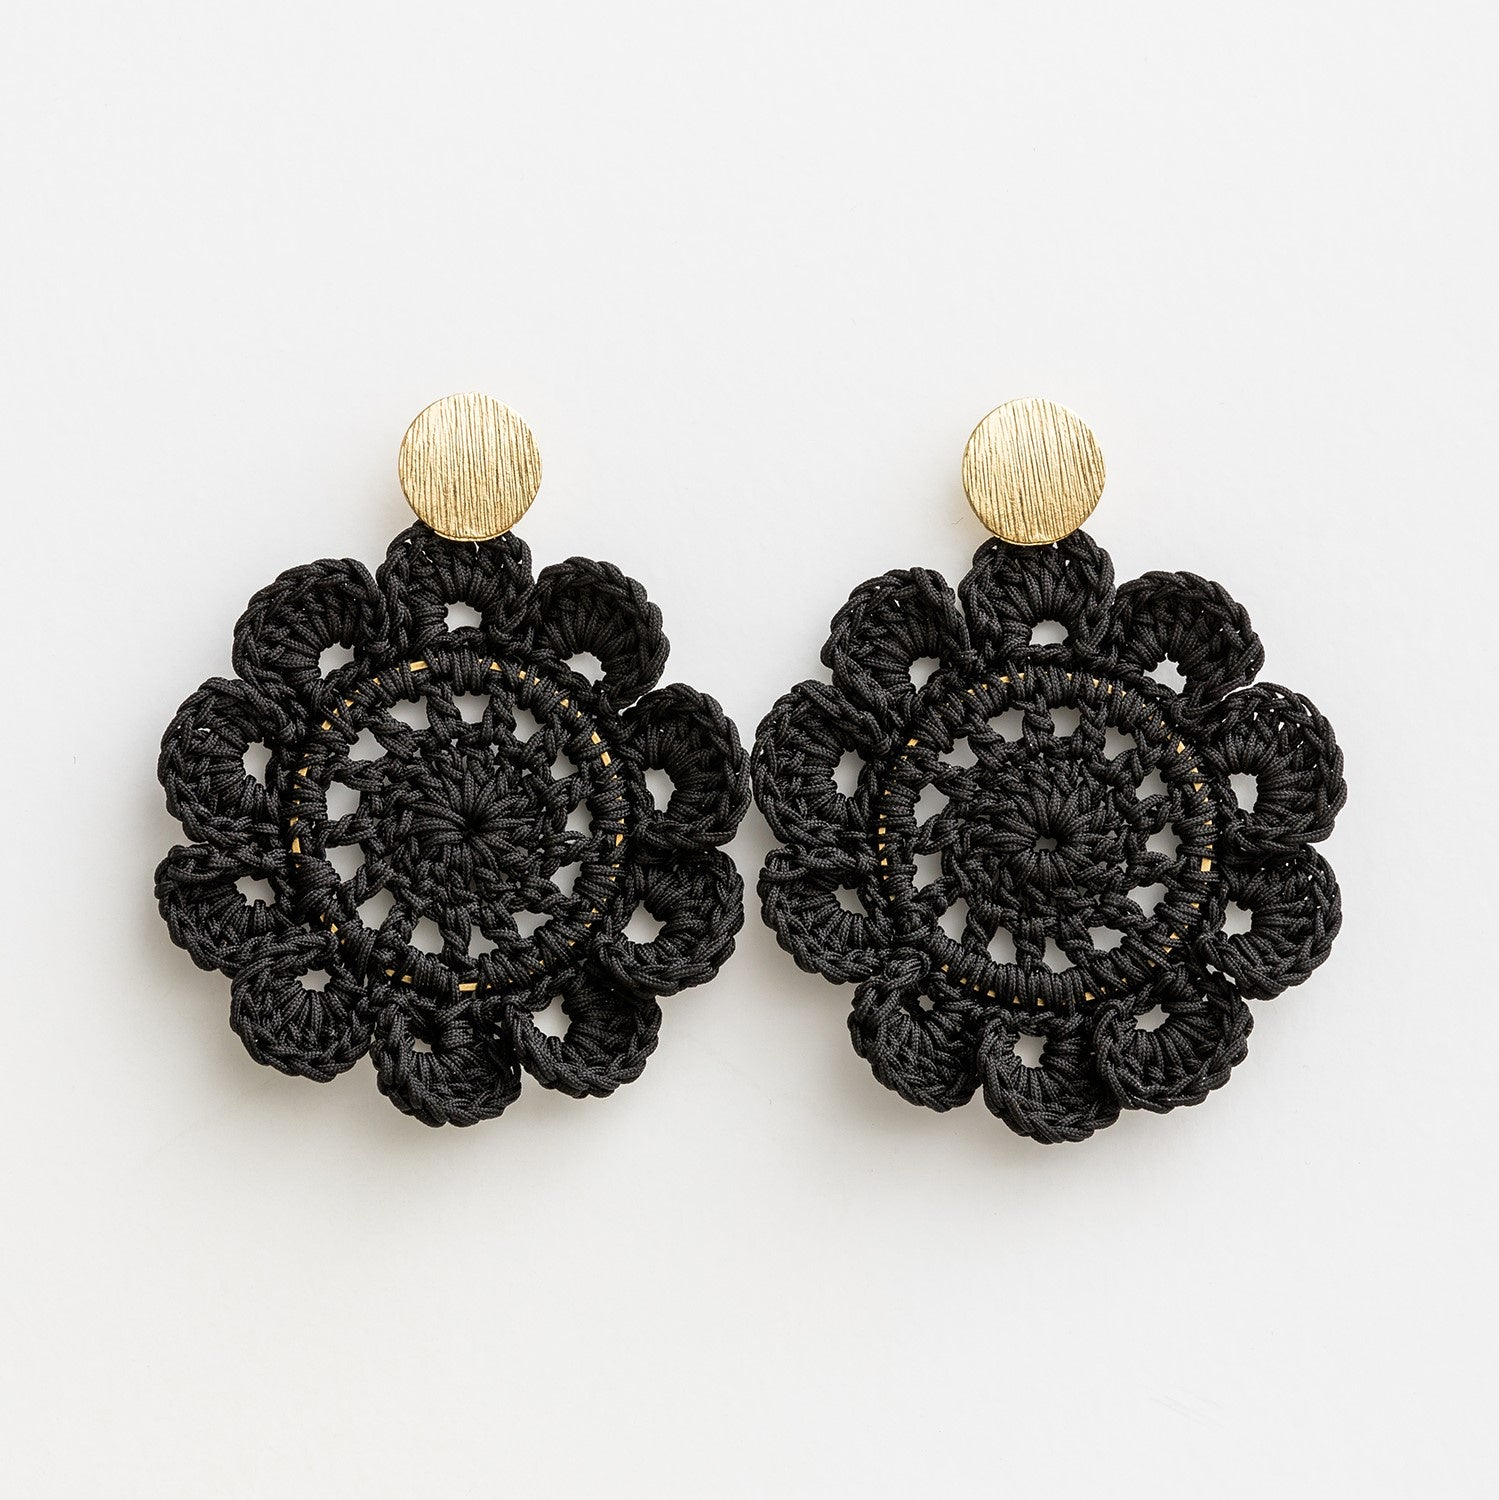 Stella + Gemma Black Crochet Earrings